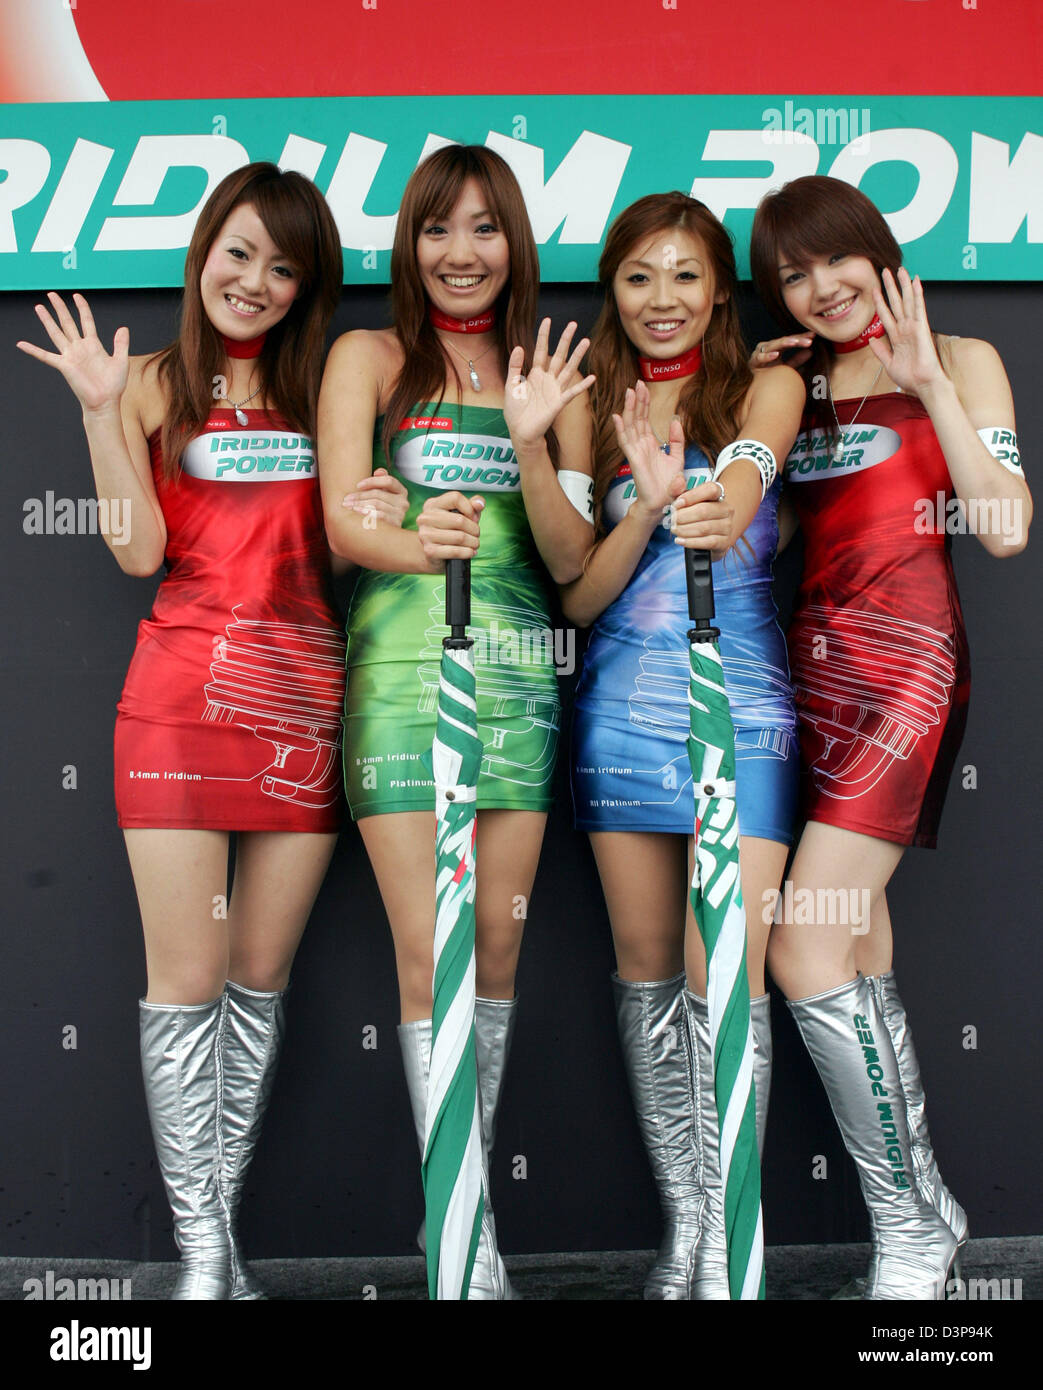 Girls wave to the camera at the Suzuka International Racing Course in Suzuka, Japan, Friday, 06 October 2006. The 2006 Formula 1 Japanese Grand Prix will take place here on Sunday, 08  October. Photo: Gero Breloer Stock Photo